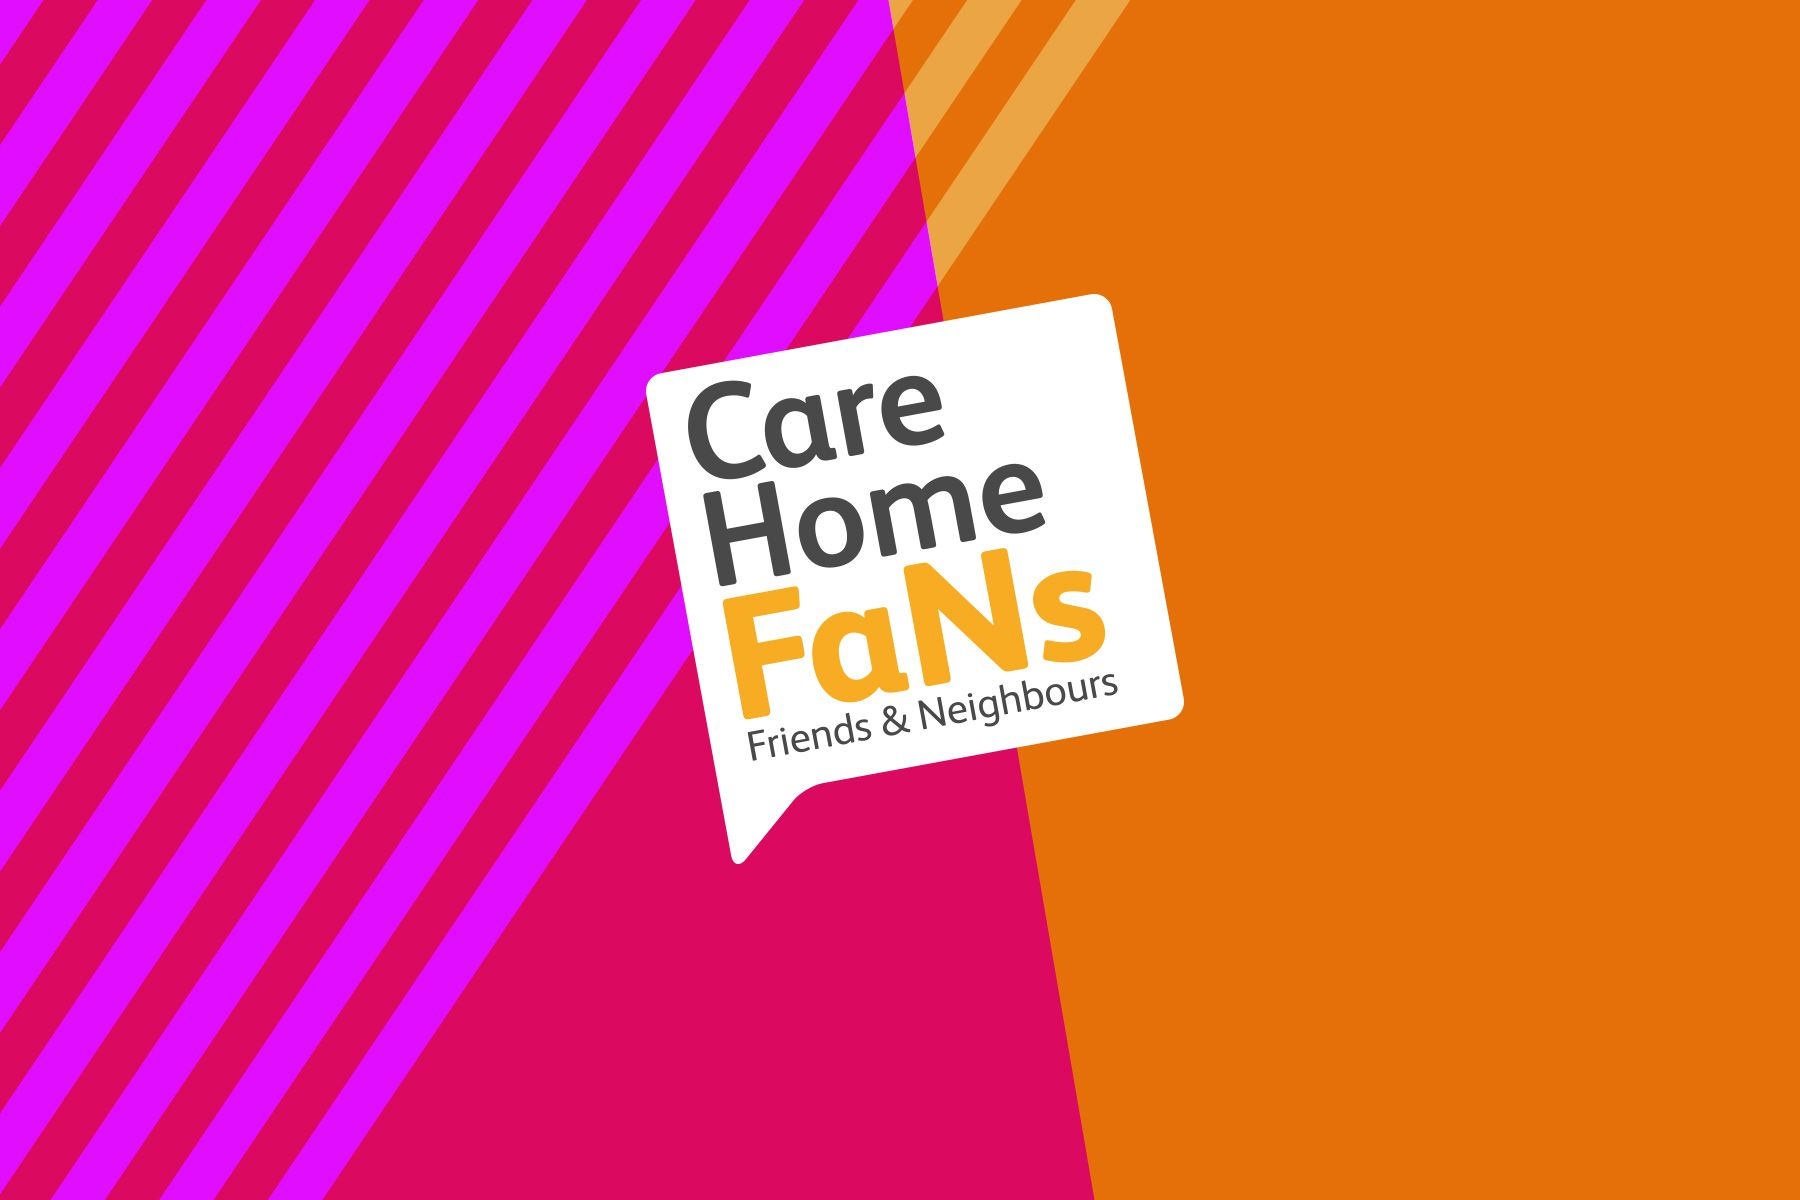 Care Home FaNs / Bringing Communities into Care Settings